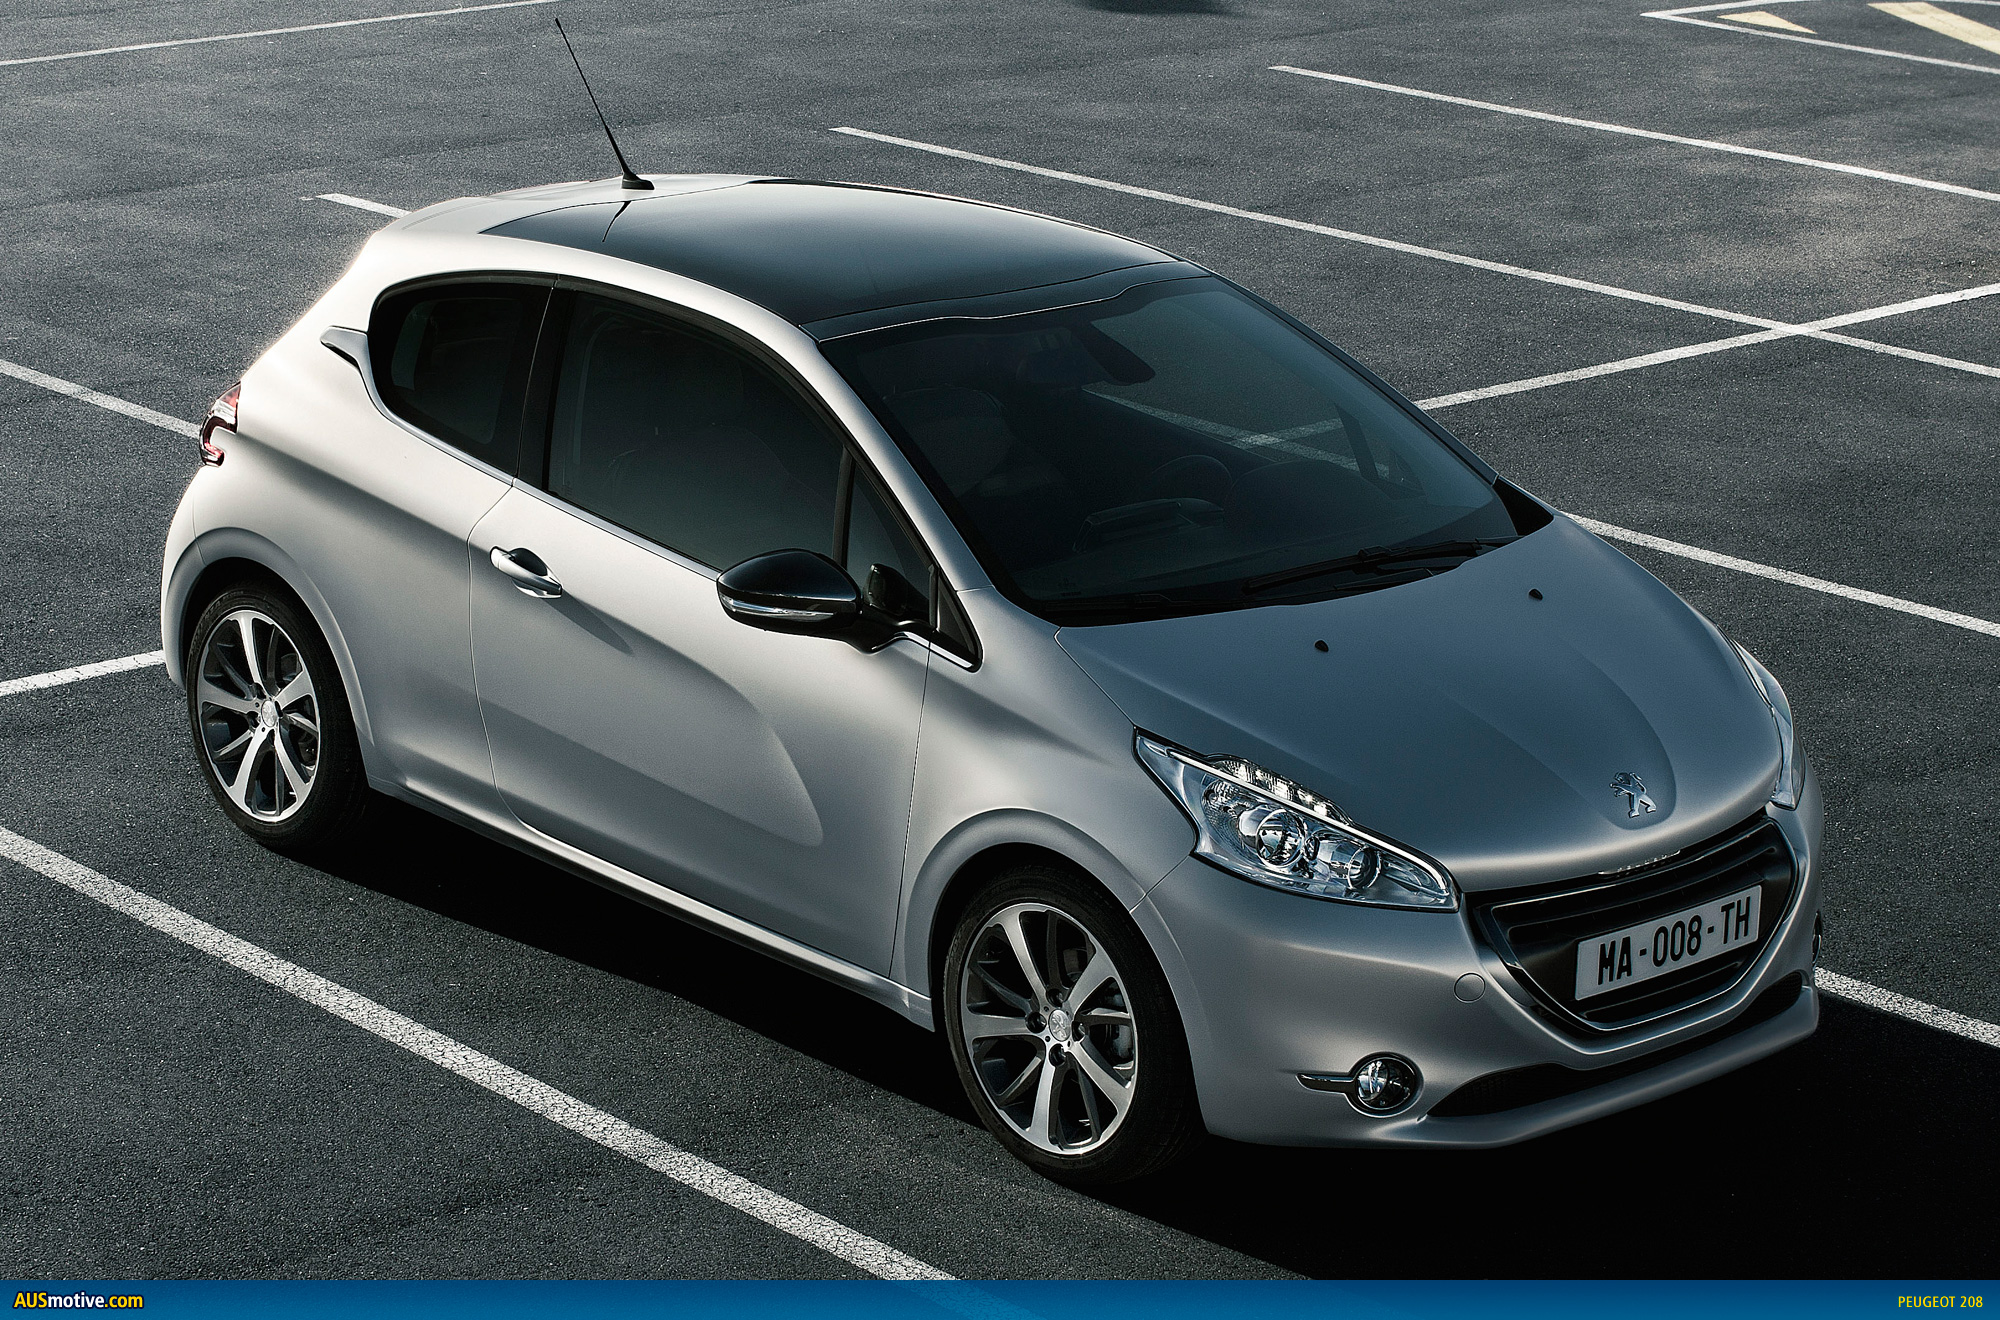 Peugeot 208 image gallery Wallpaper Backgrounds